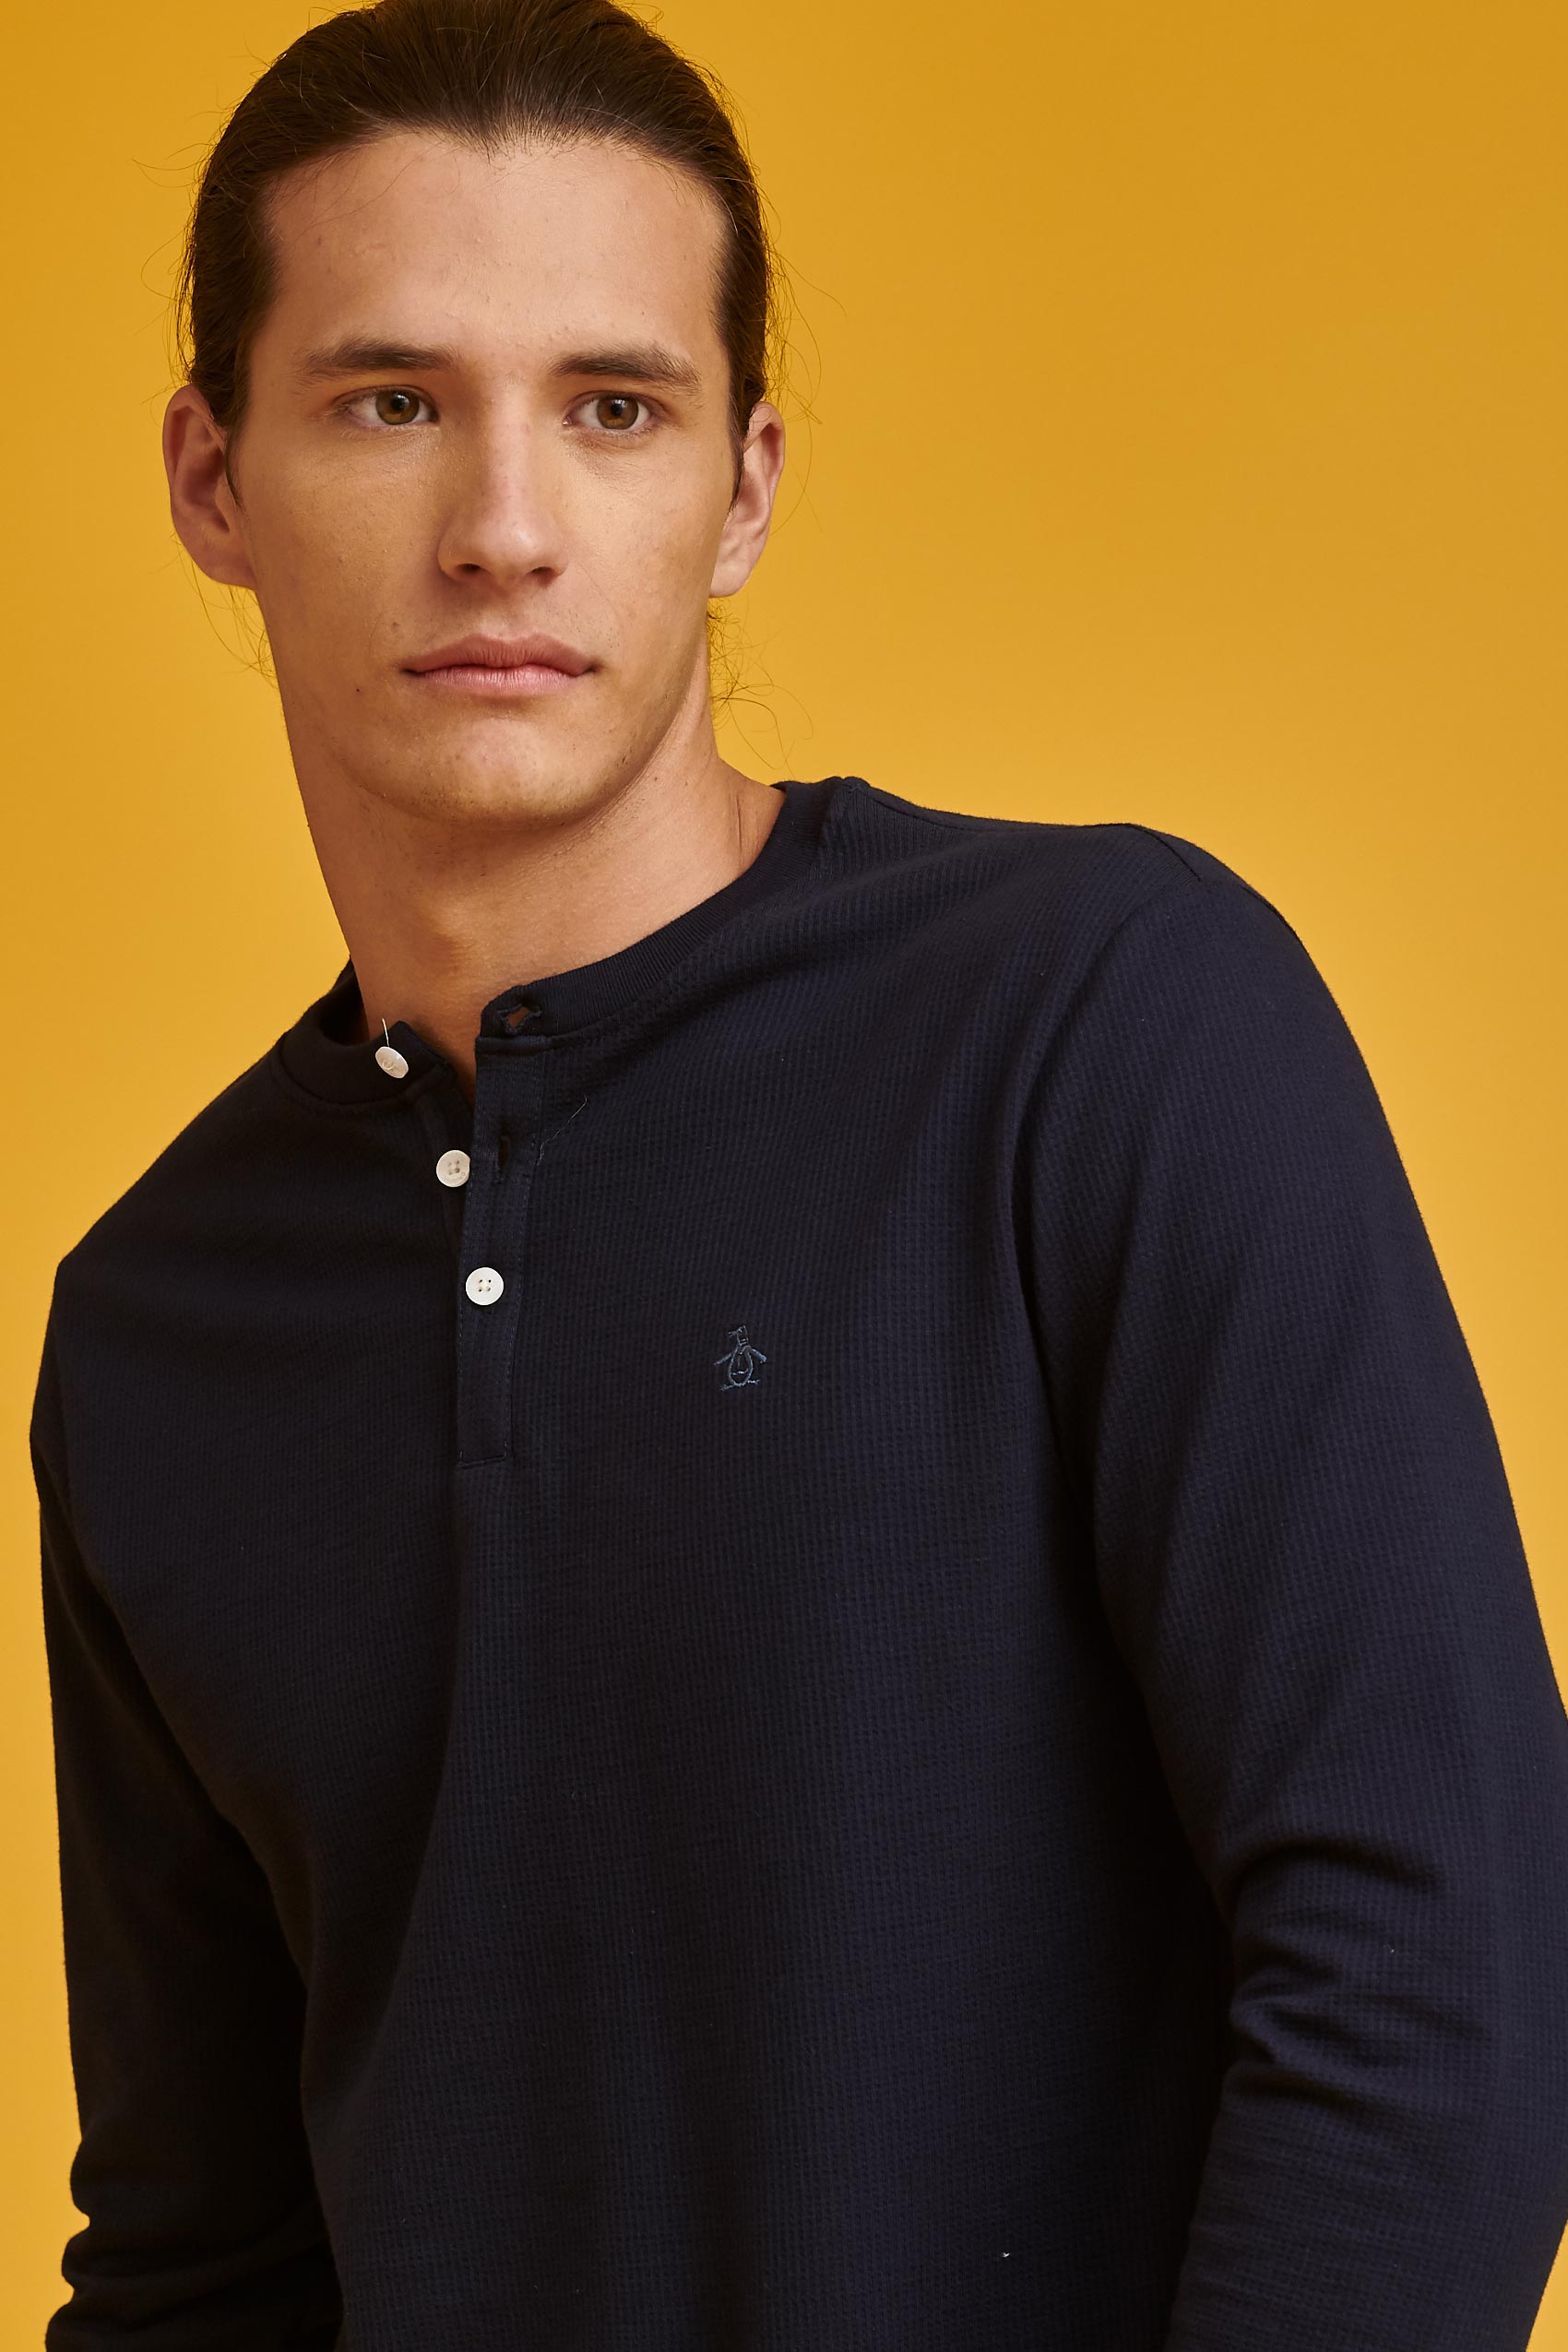 penguin_ls-waffle-henley_00-14-2020__picture-14868